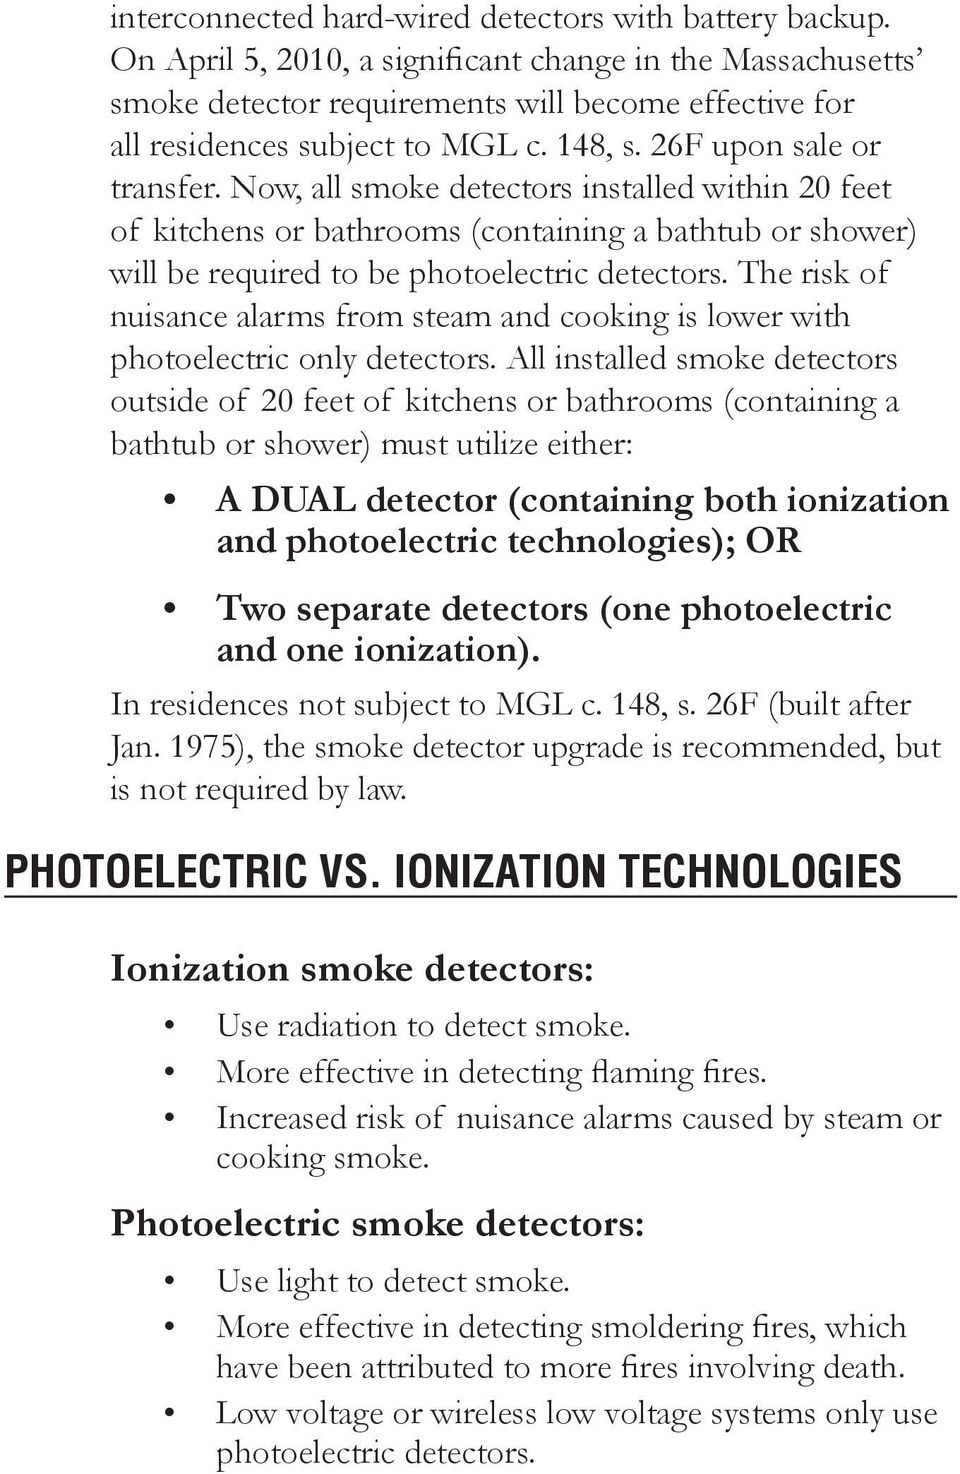 Now, all smoke detectors installed within 20 feet of kitchens or bathrooms (containing a bathtub or shower) will be required to be photoelectric detectors.